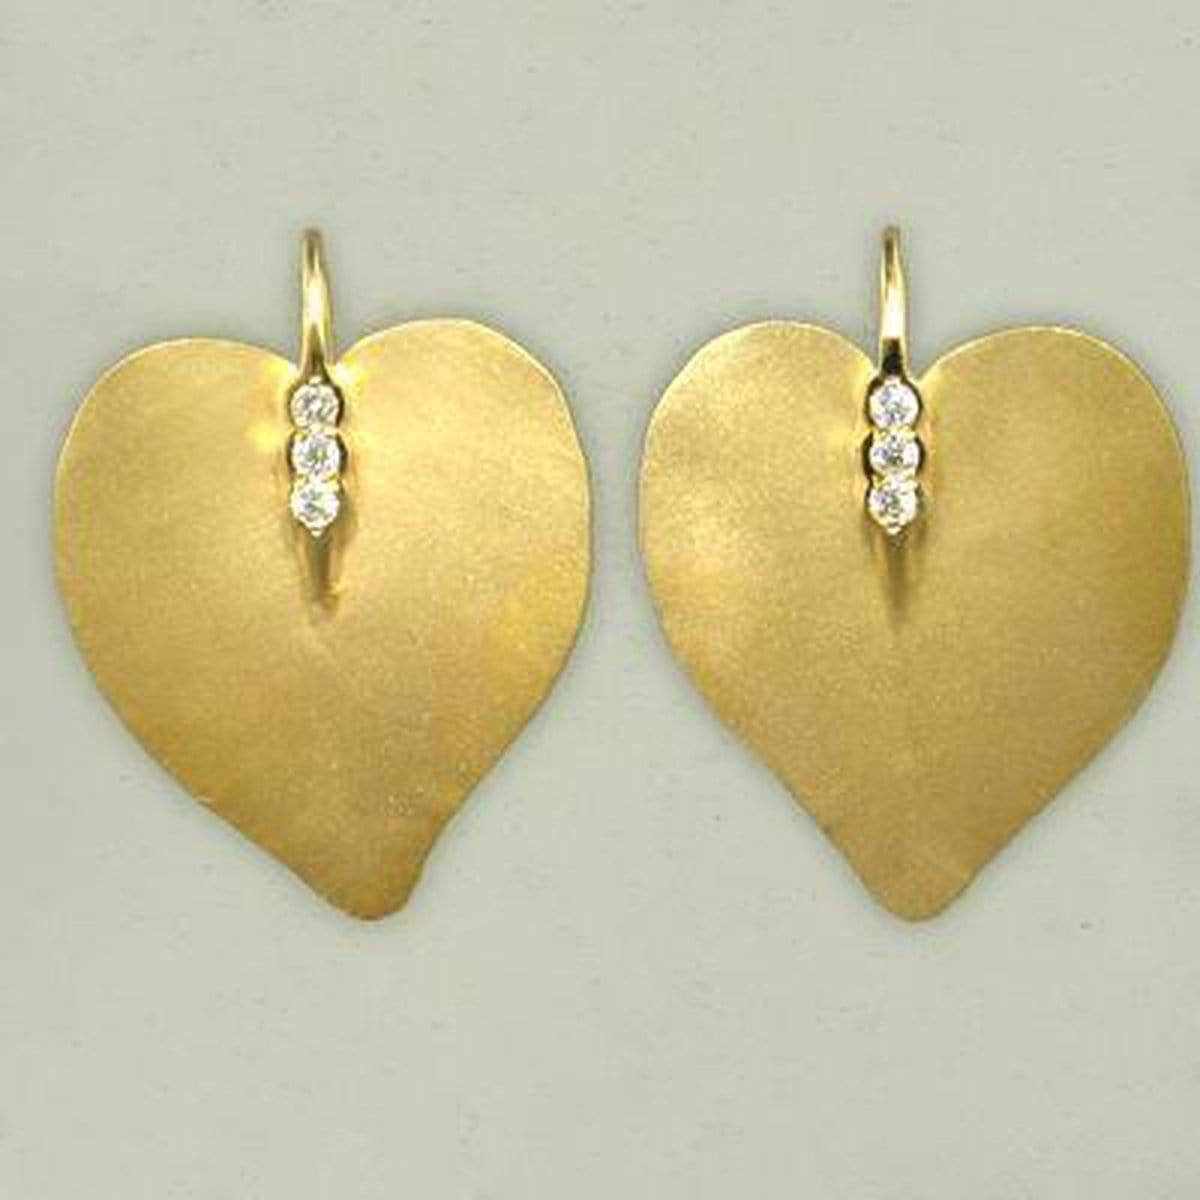 Marika Diamond & 14k Gold Earrings - M4222-Marika-Renee Taylor Gallery